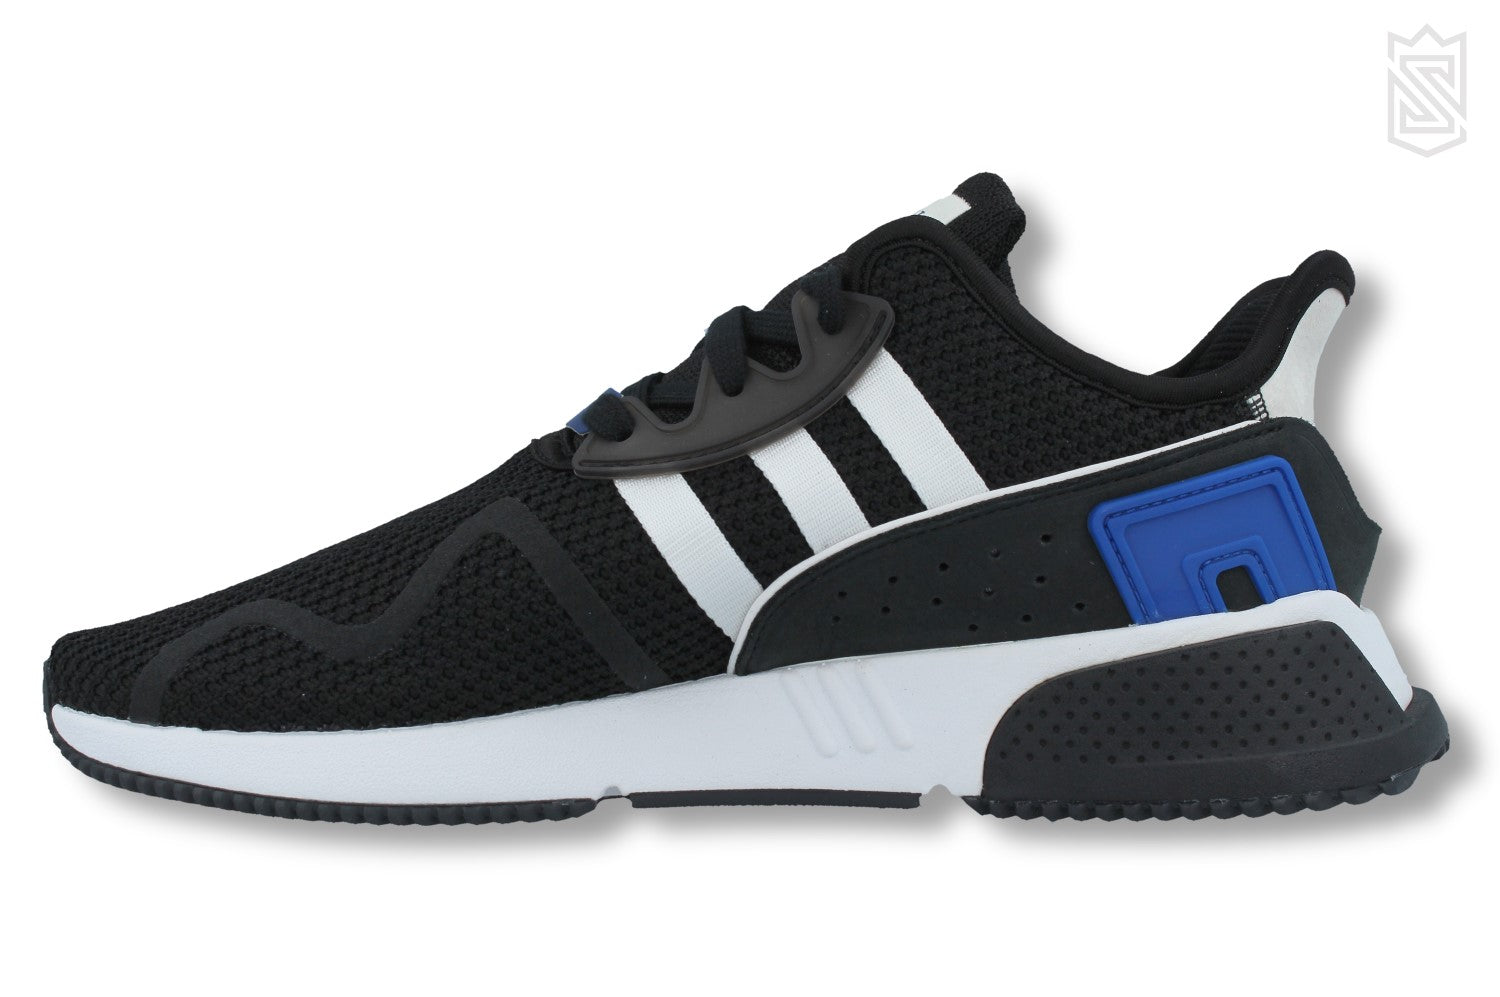 EQT Cushion ADV - Blue Pack - Schrittmacher Shop